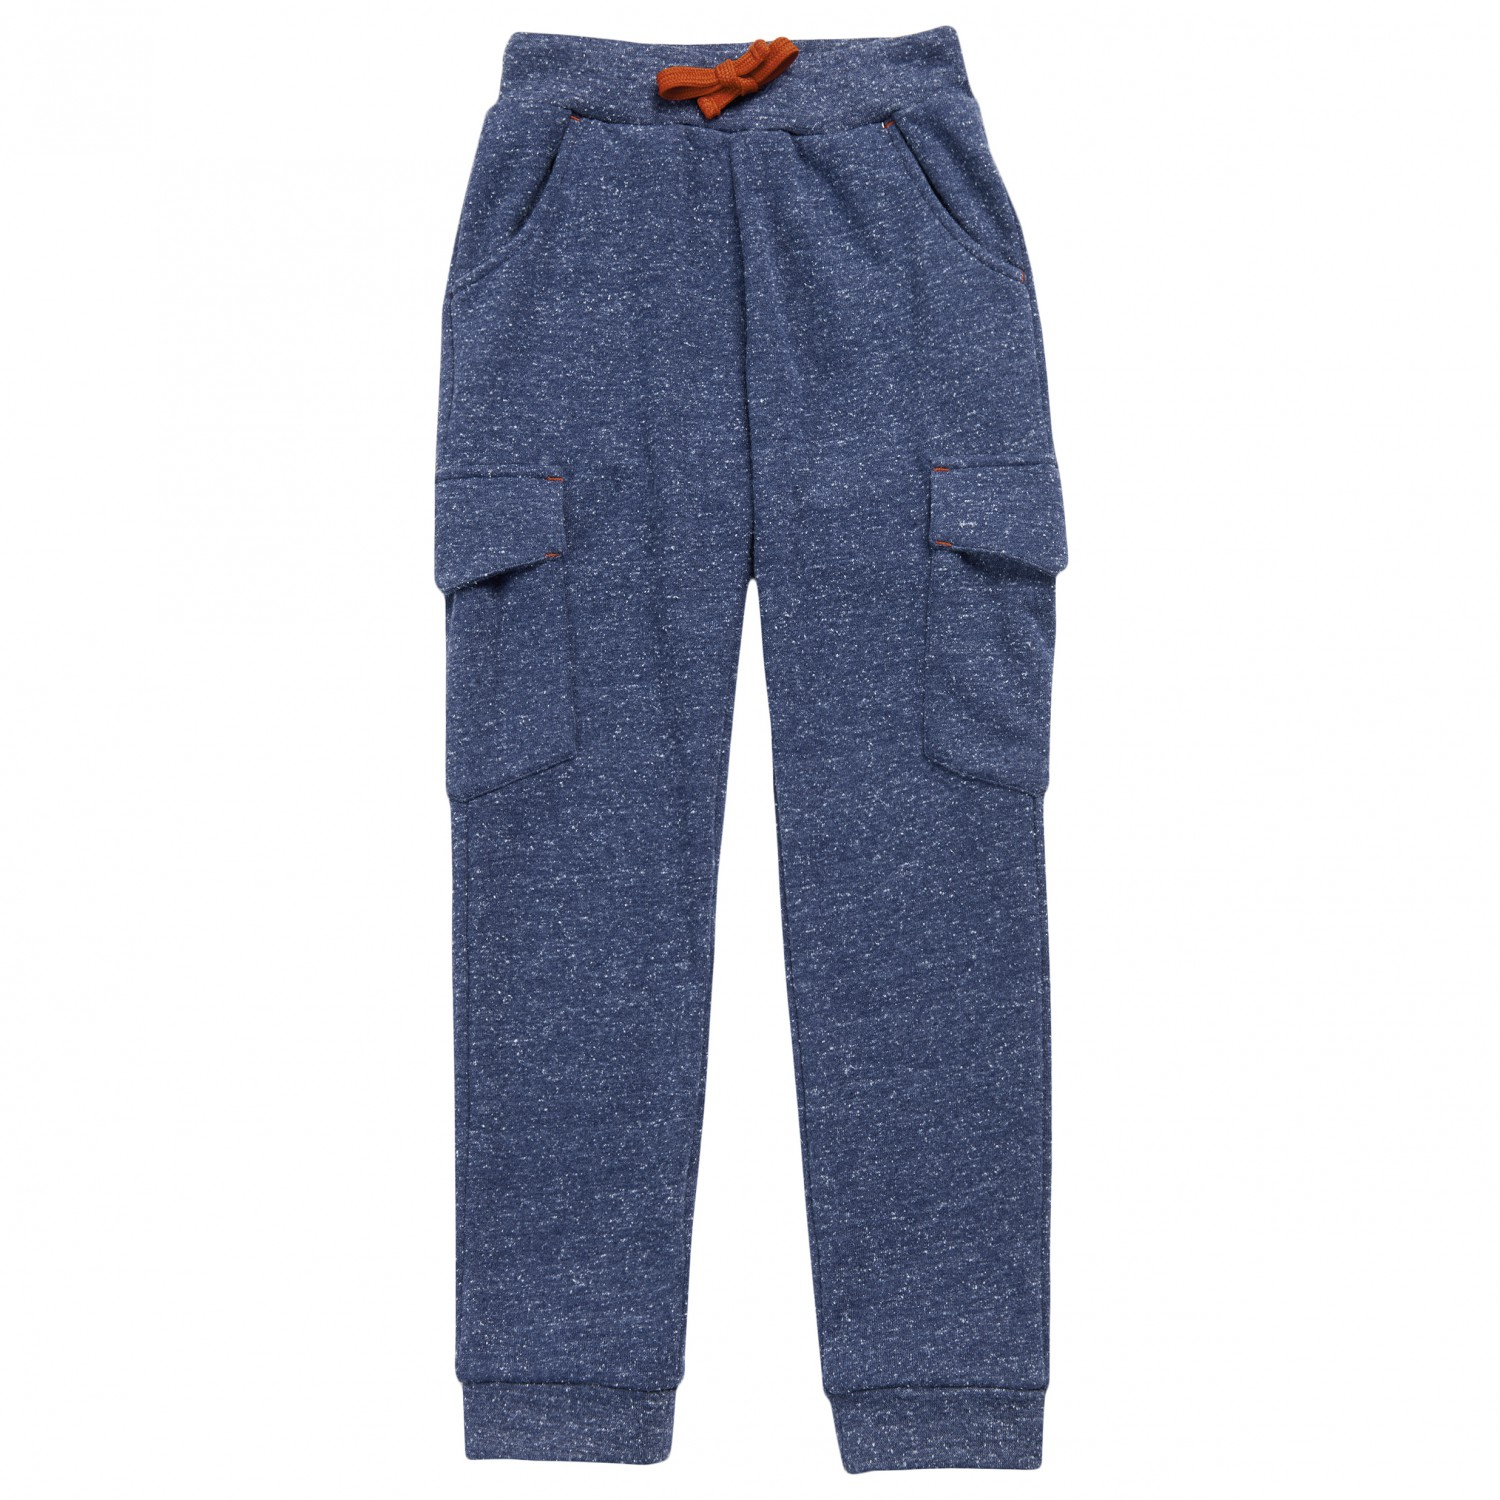 0021919fef2 United By Blue Jogger Pant - Tracksuit trousers Kids | Buy online ...